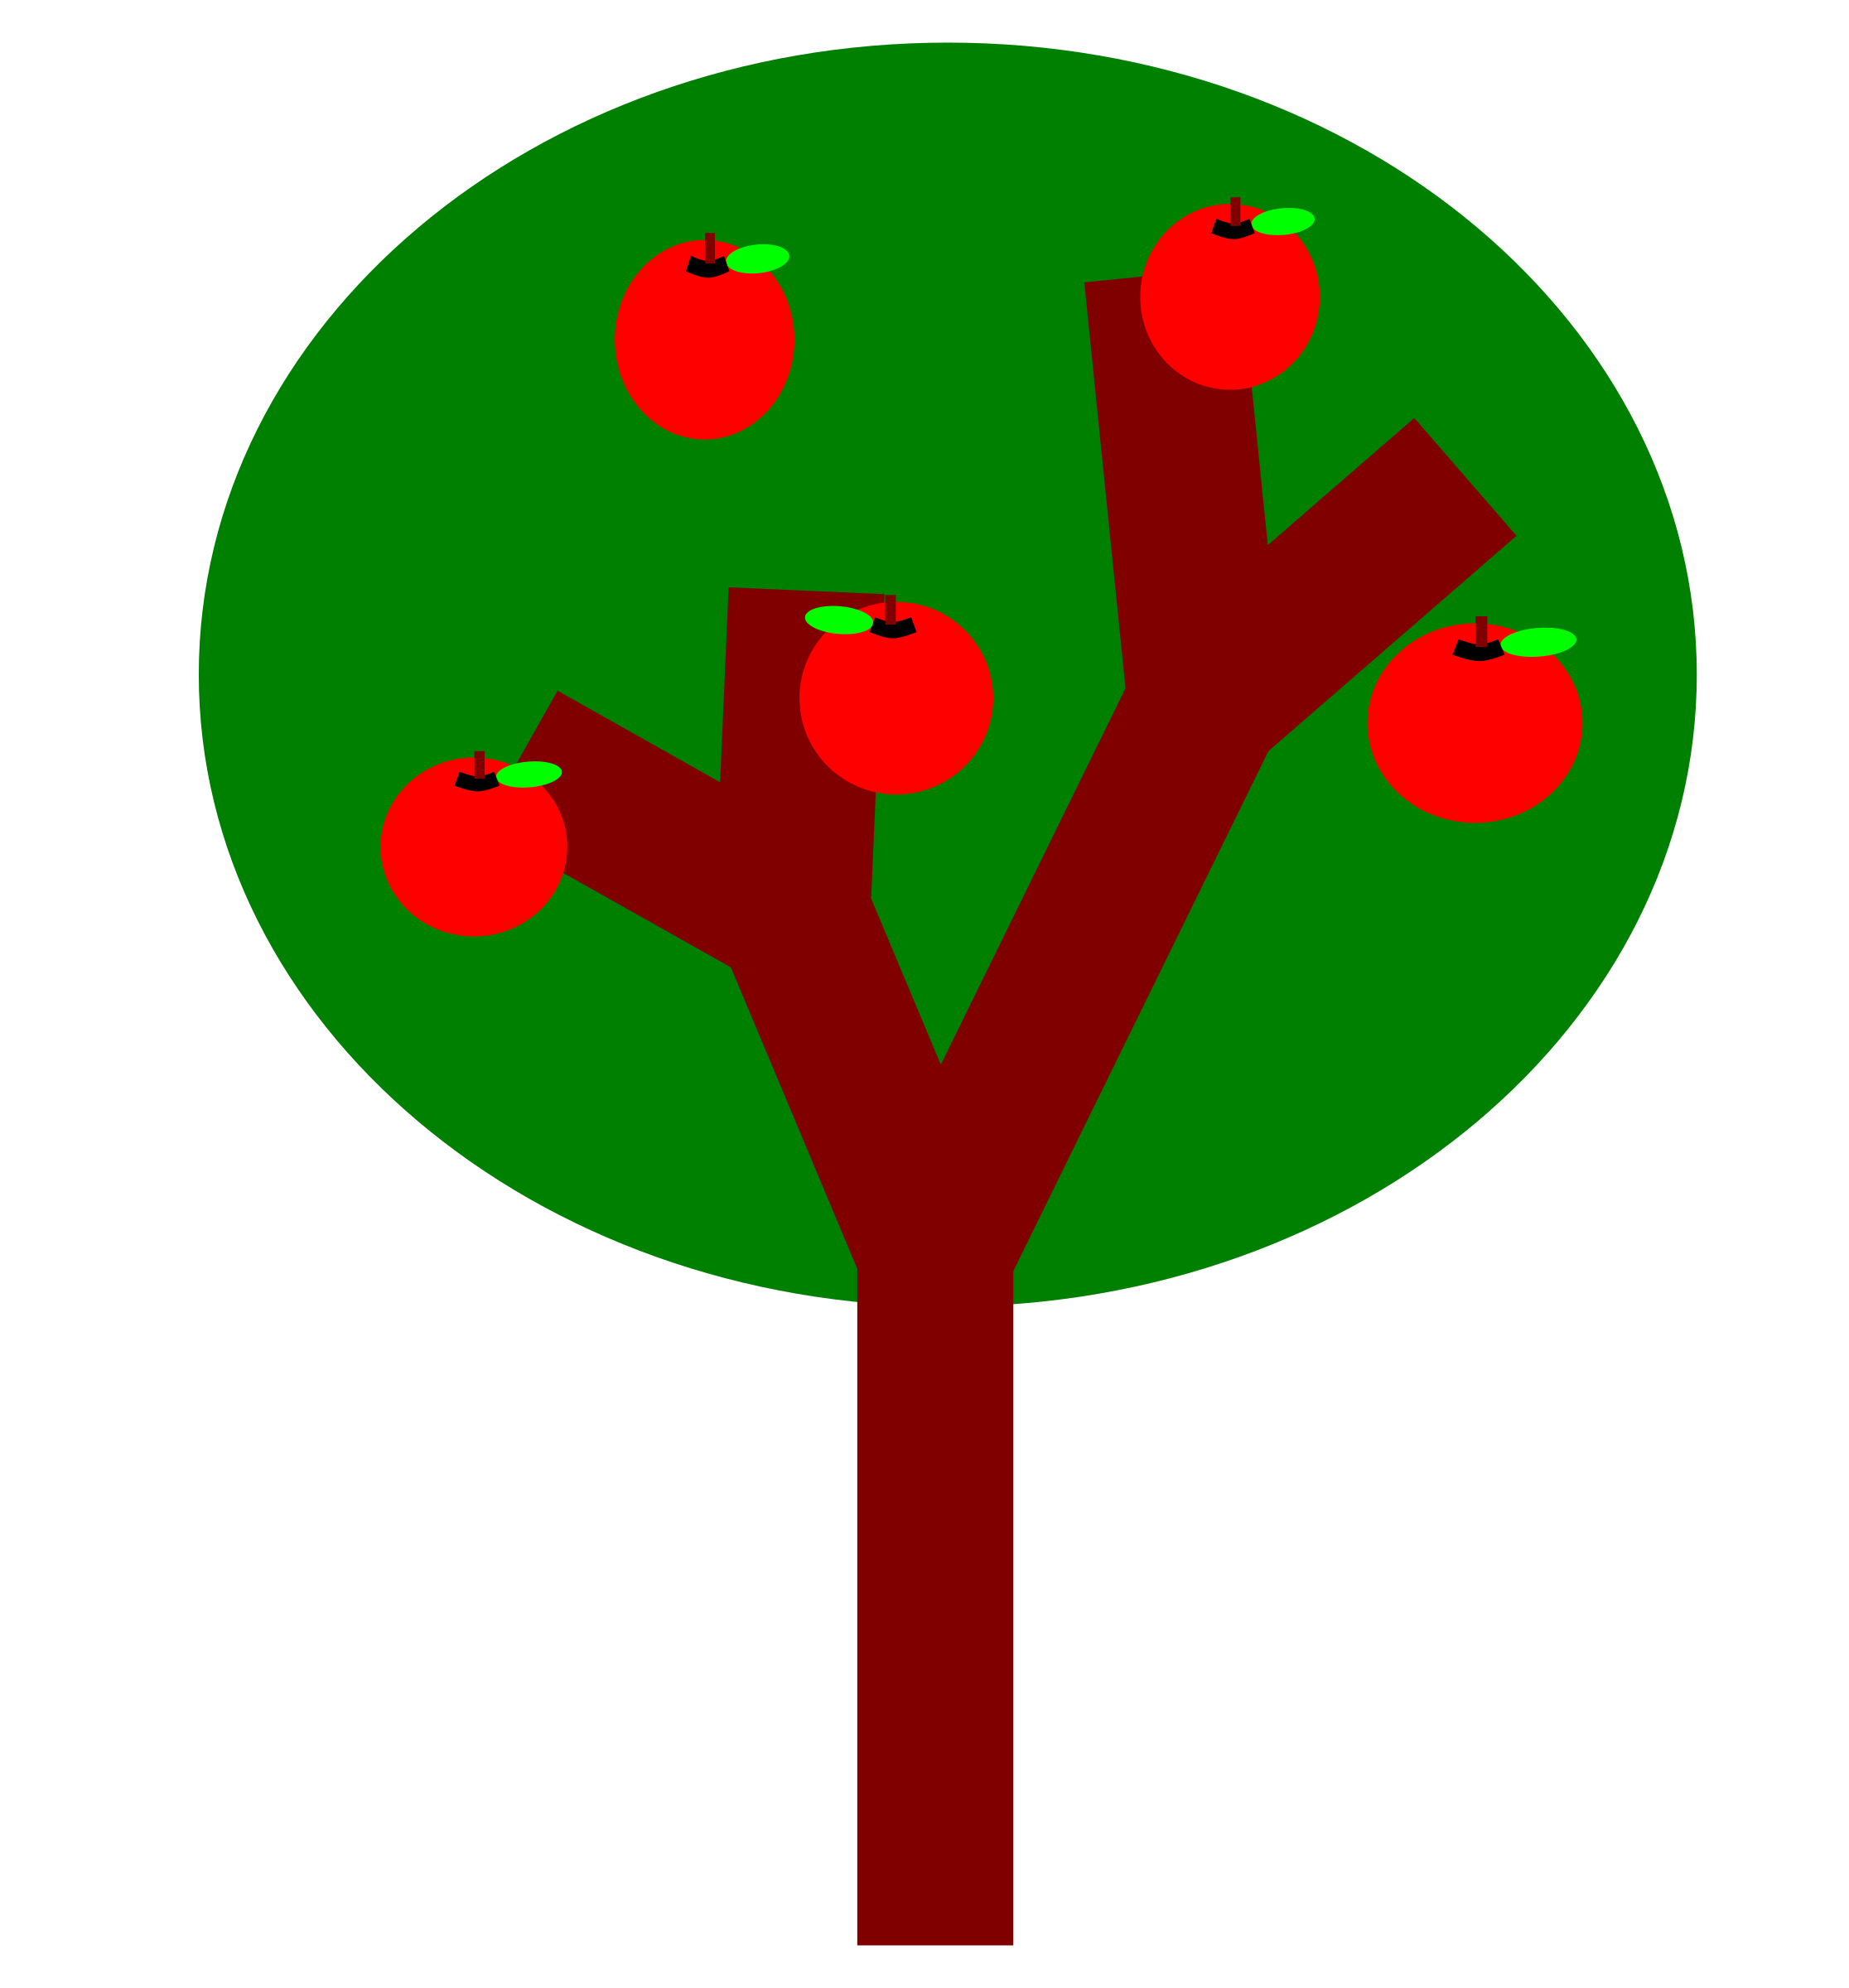 2 apple clipart banner download Clipart - A tree with apples banner download